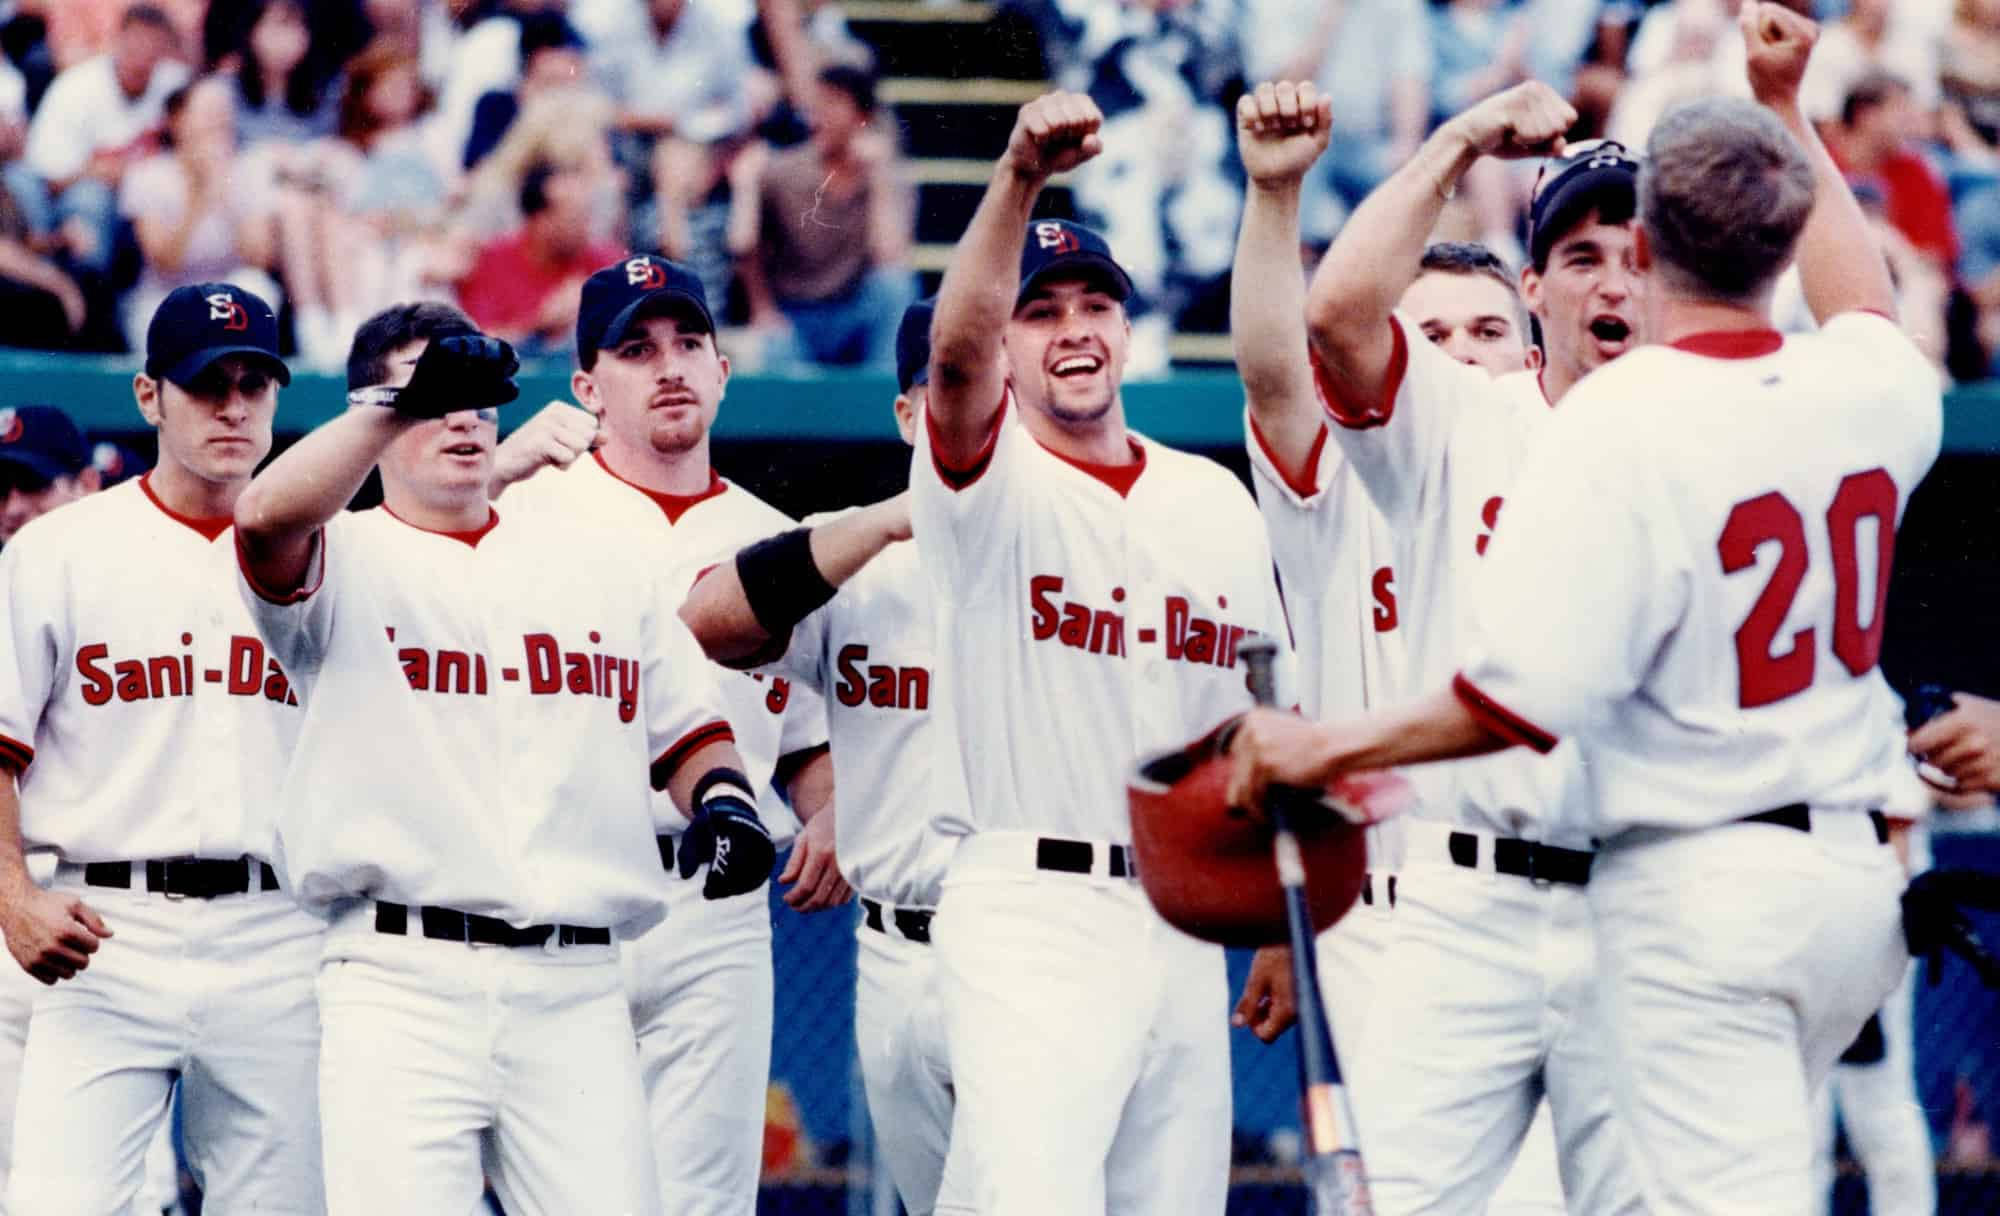 Sani-Dairy salute at home plate 1997